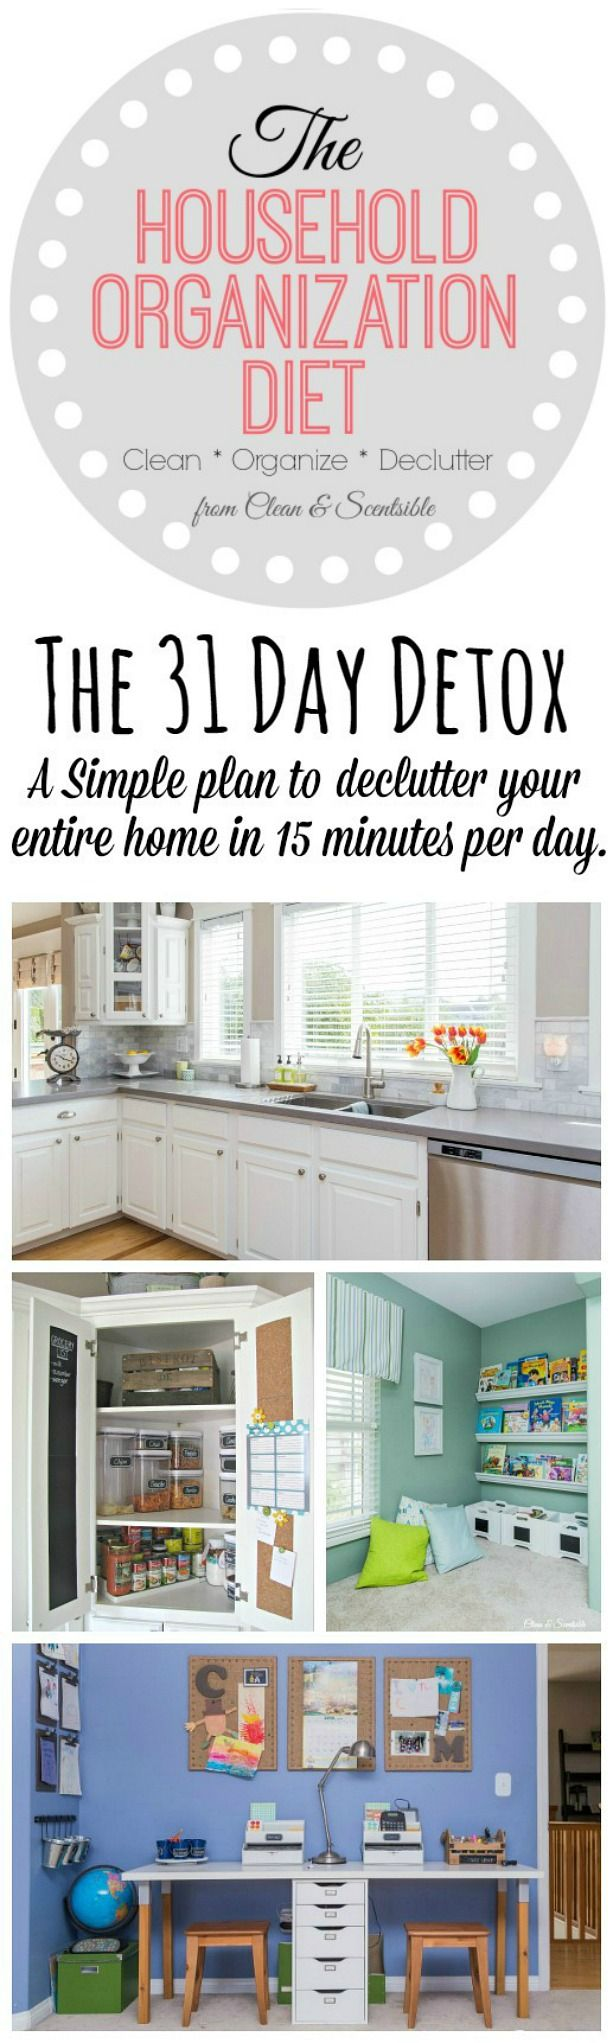 The 31 Day Household Detox is designed to jumpstart your decluttering process & organization habits. Get your whole home decluttered in 15 minutes per day!